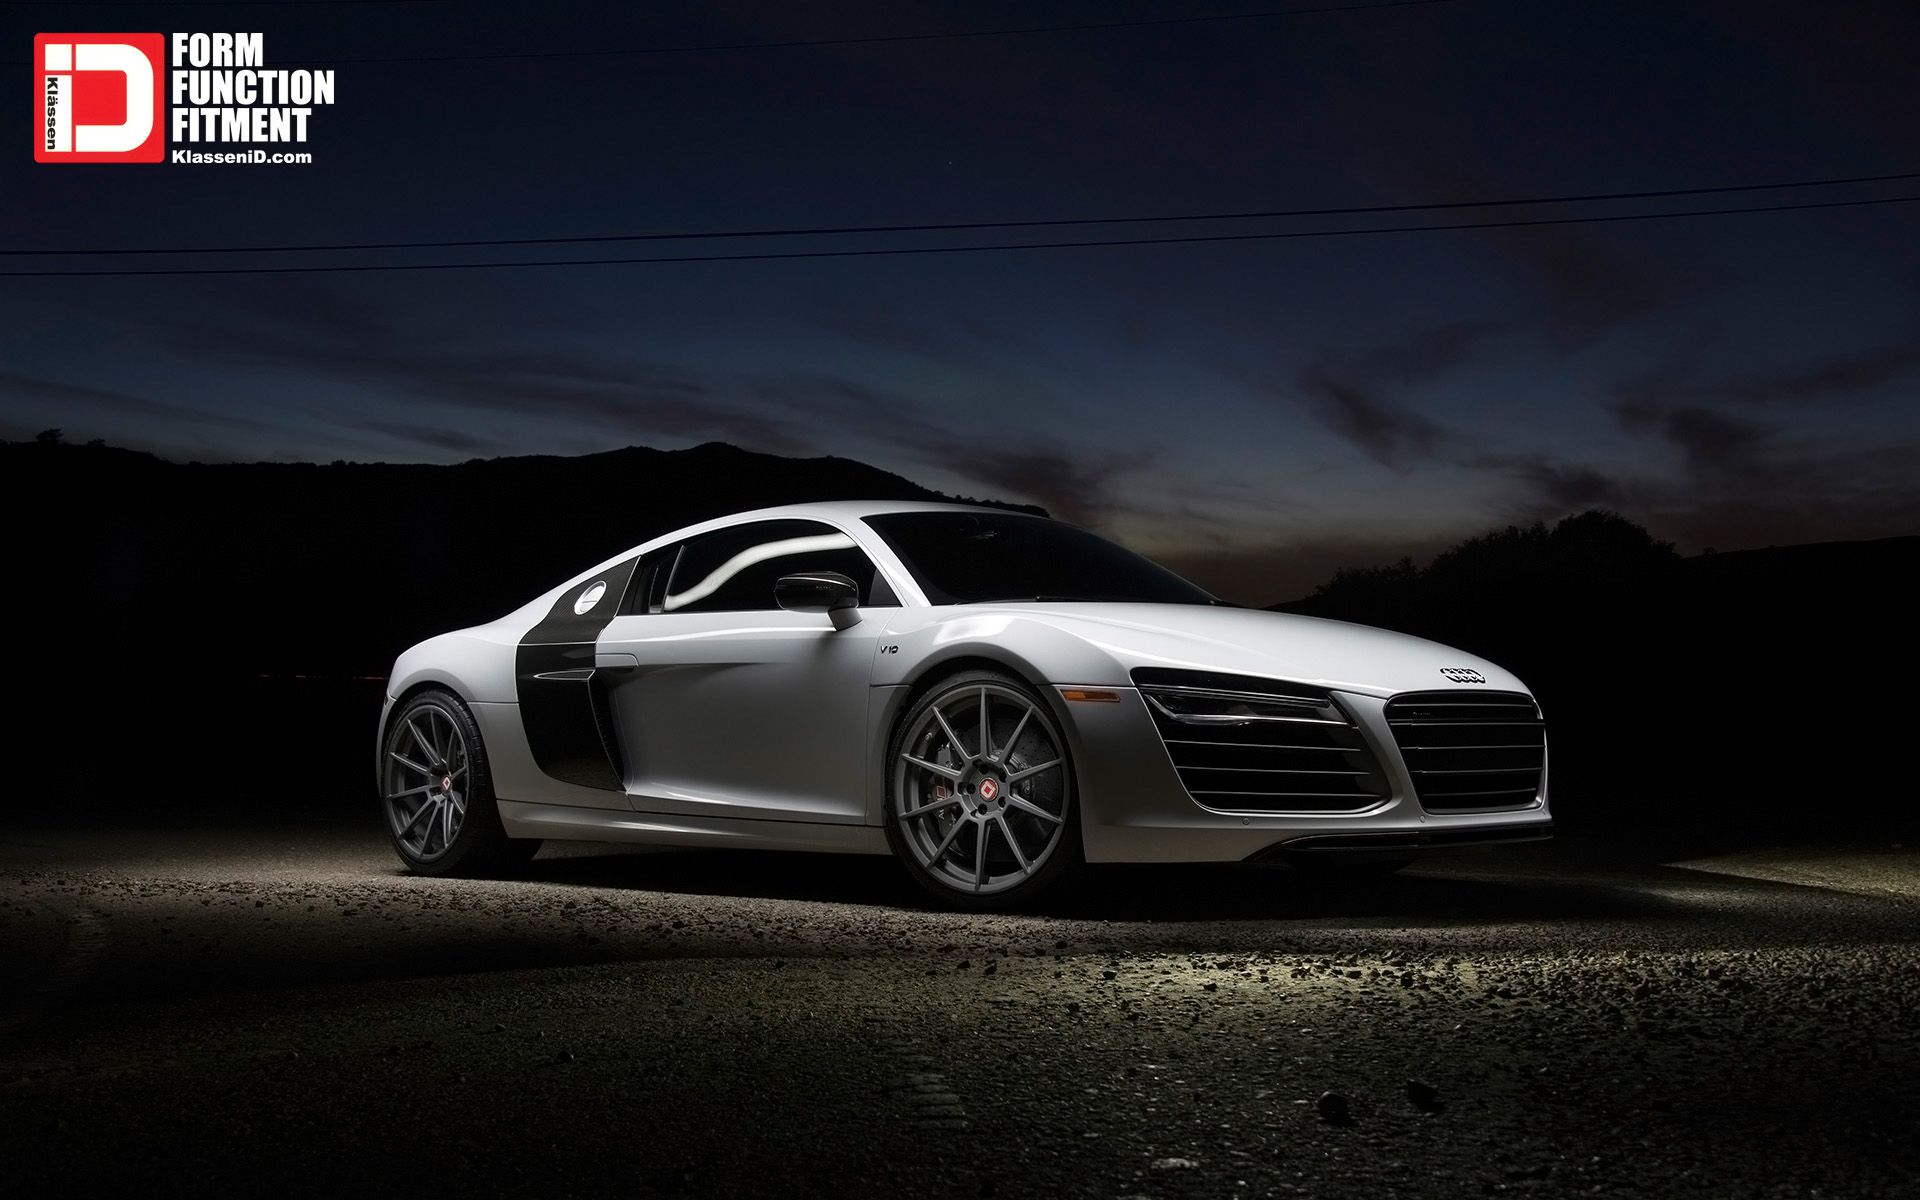 audi hd quality wallpapers for free